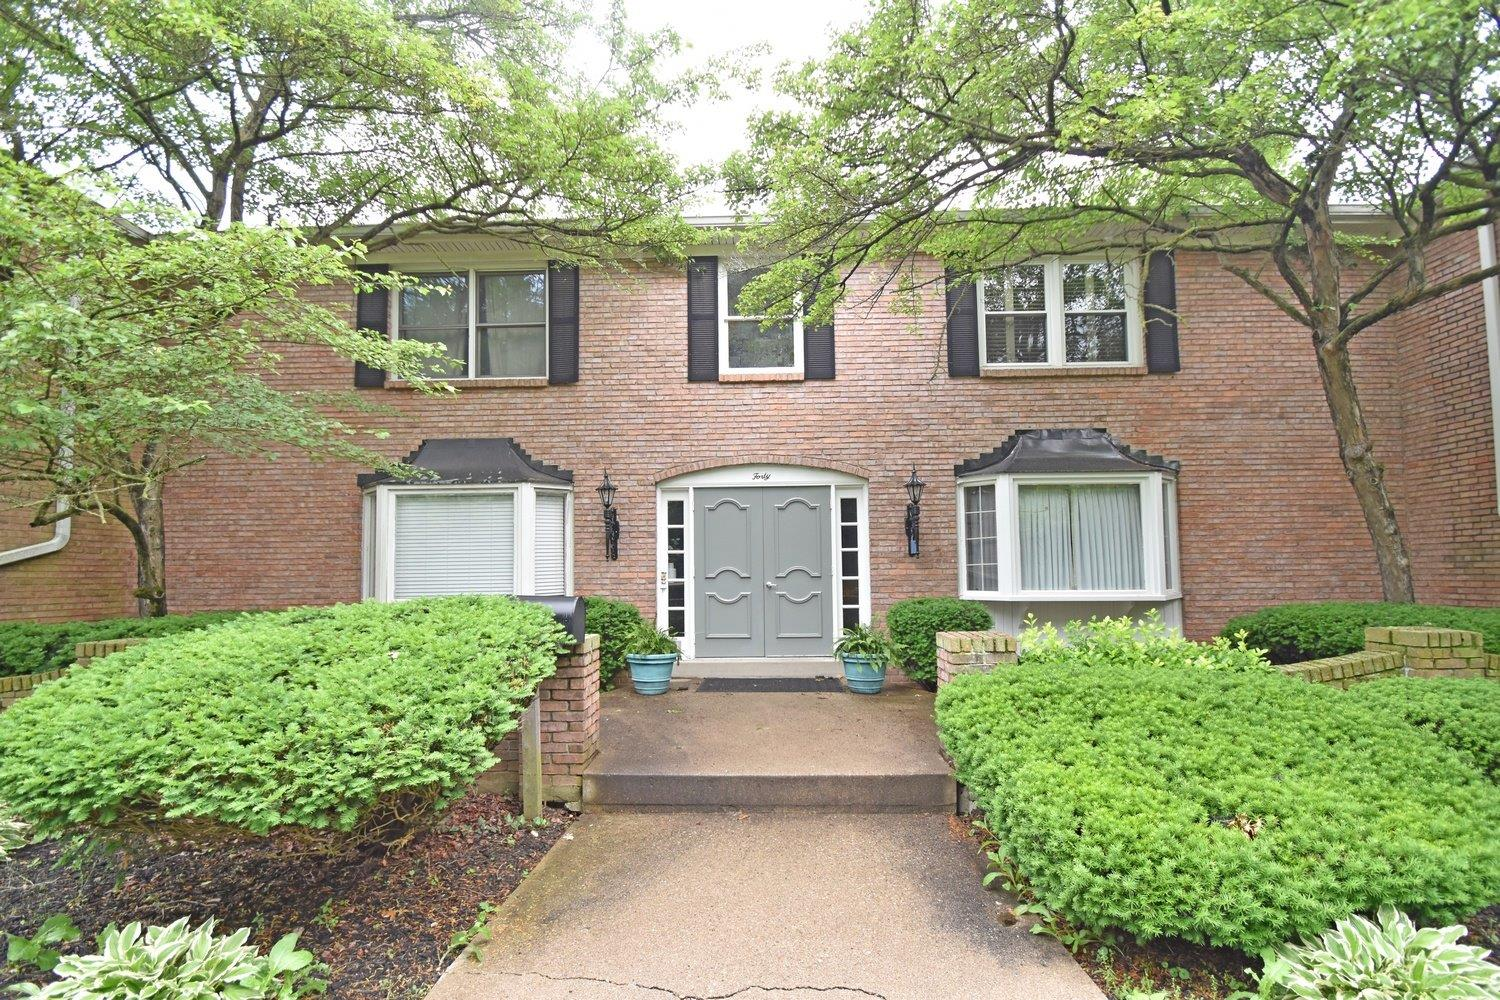 Photo 2 for 40 Sherry Rd, 4 Wyoming, OH 45215